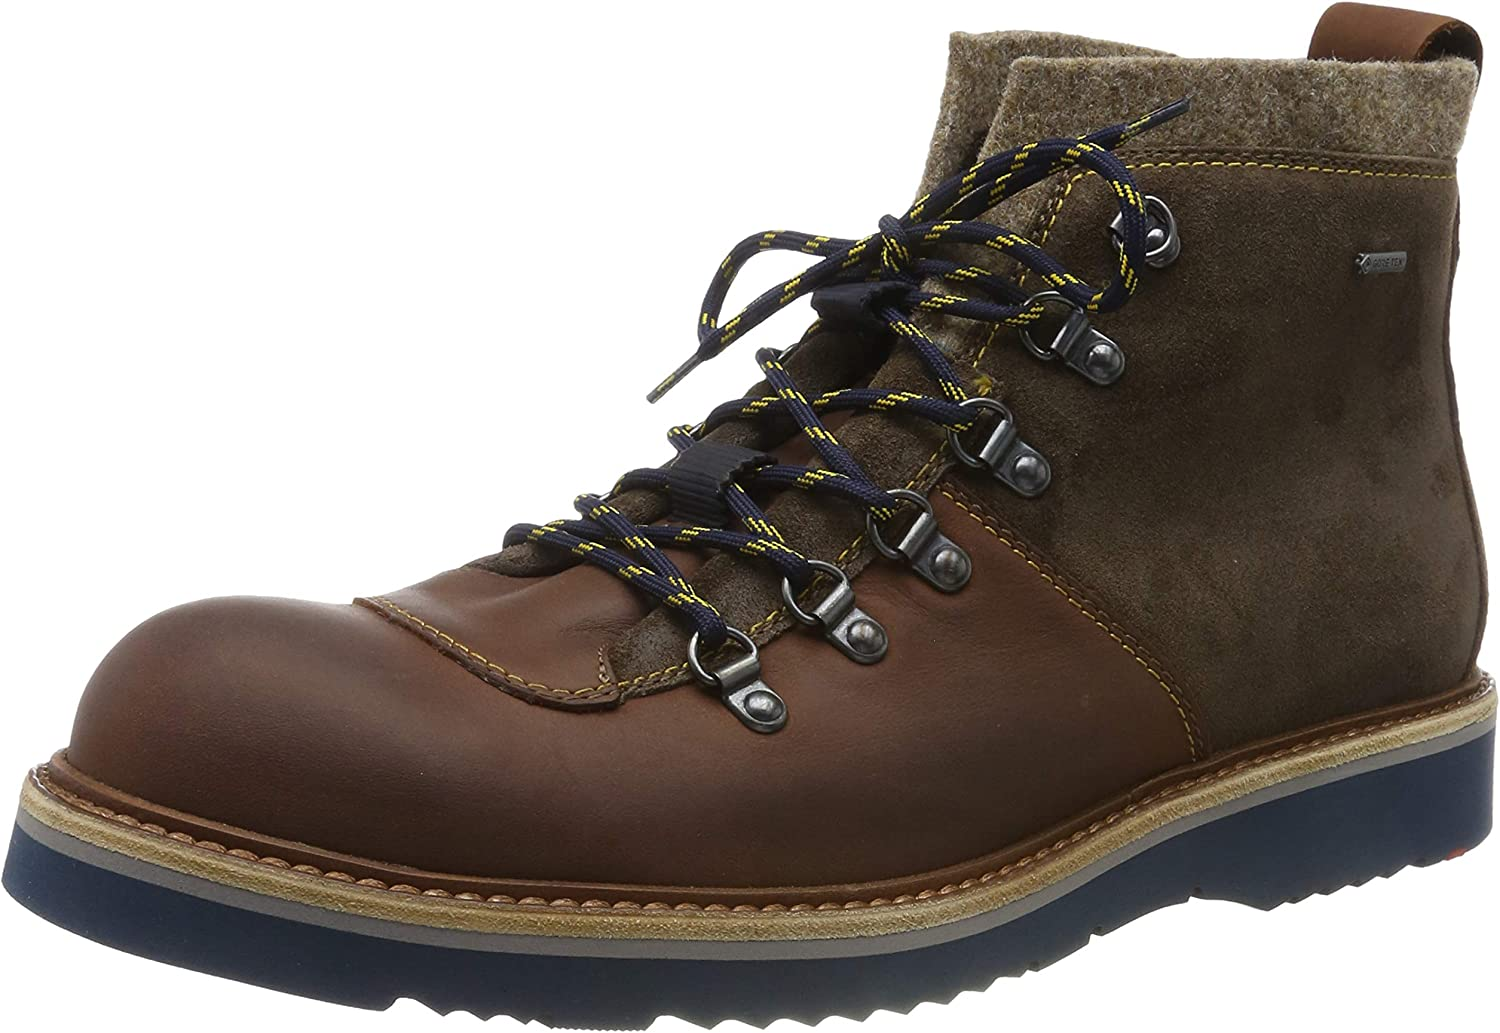 Lloyd In a popularity Men's Boots Cheap super special price Snow